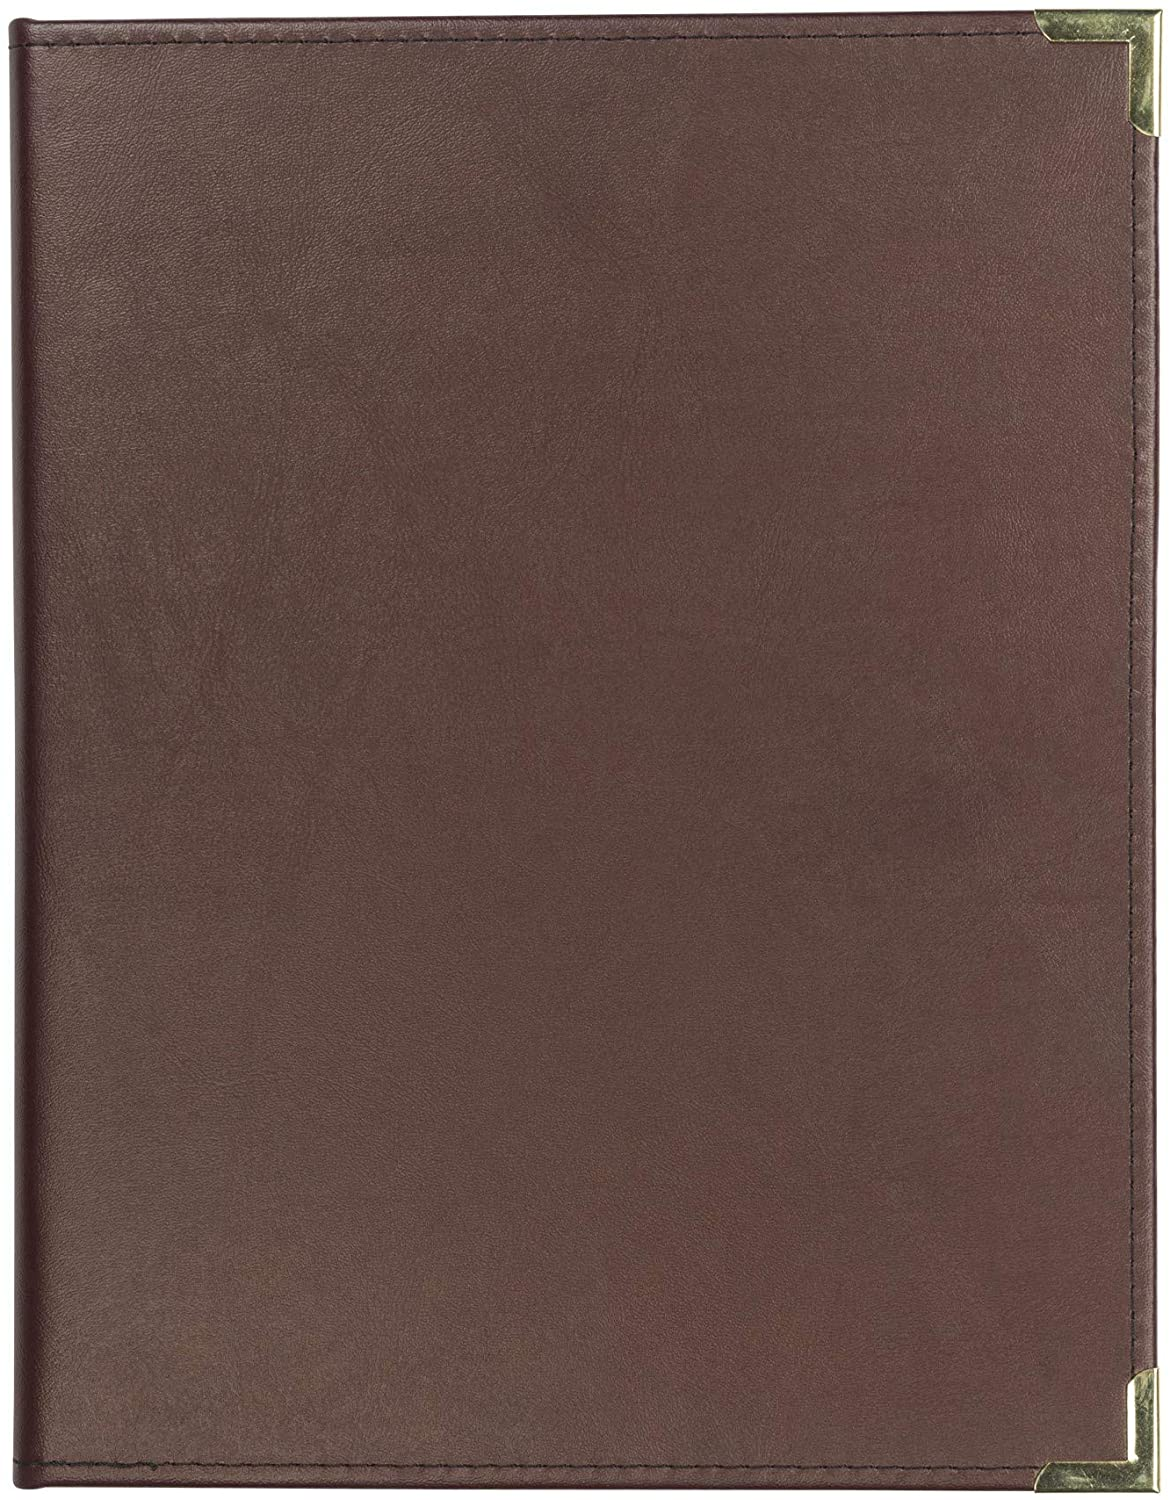 <strong>5. Samsill Classic Collection Business Padfolio</strong>